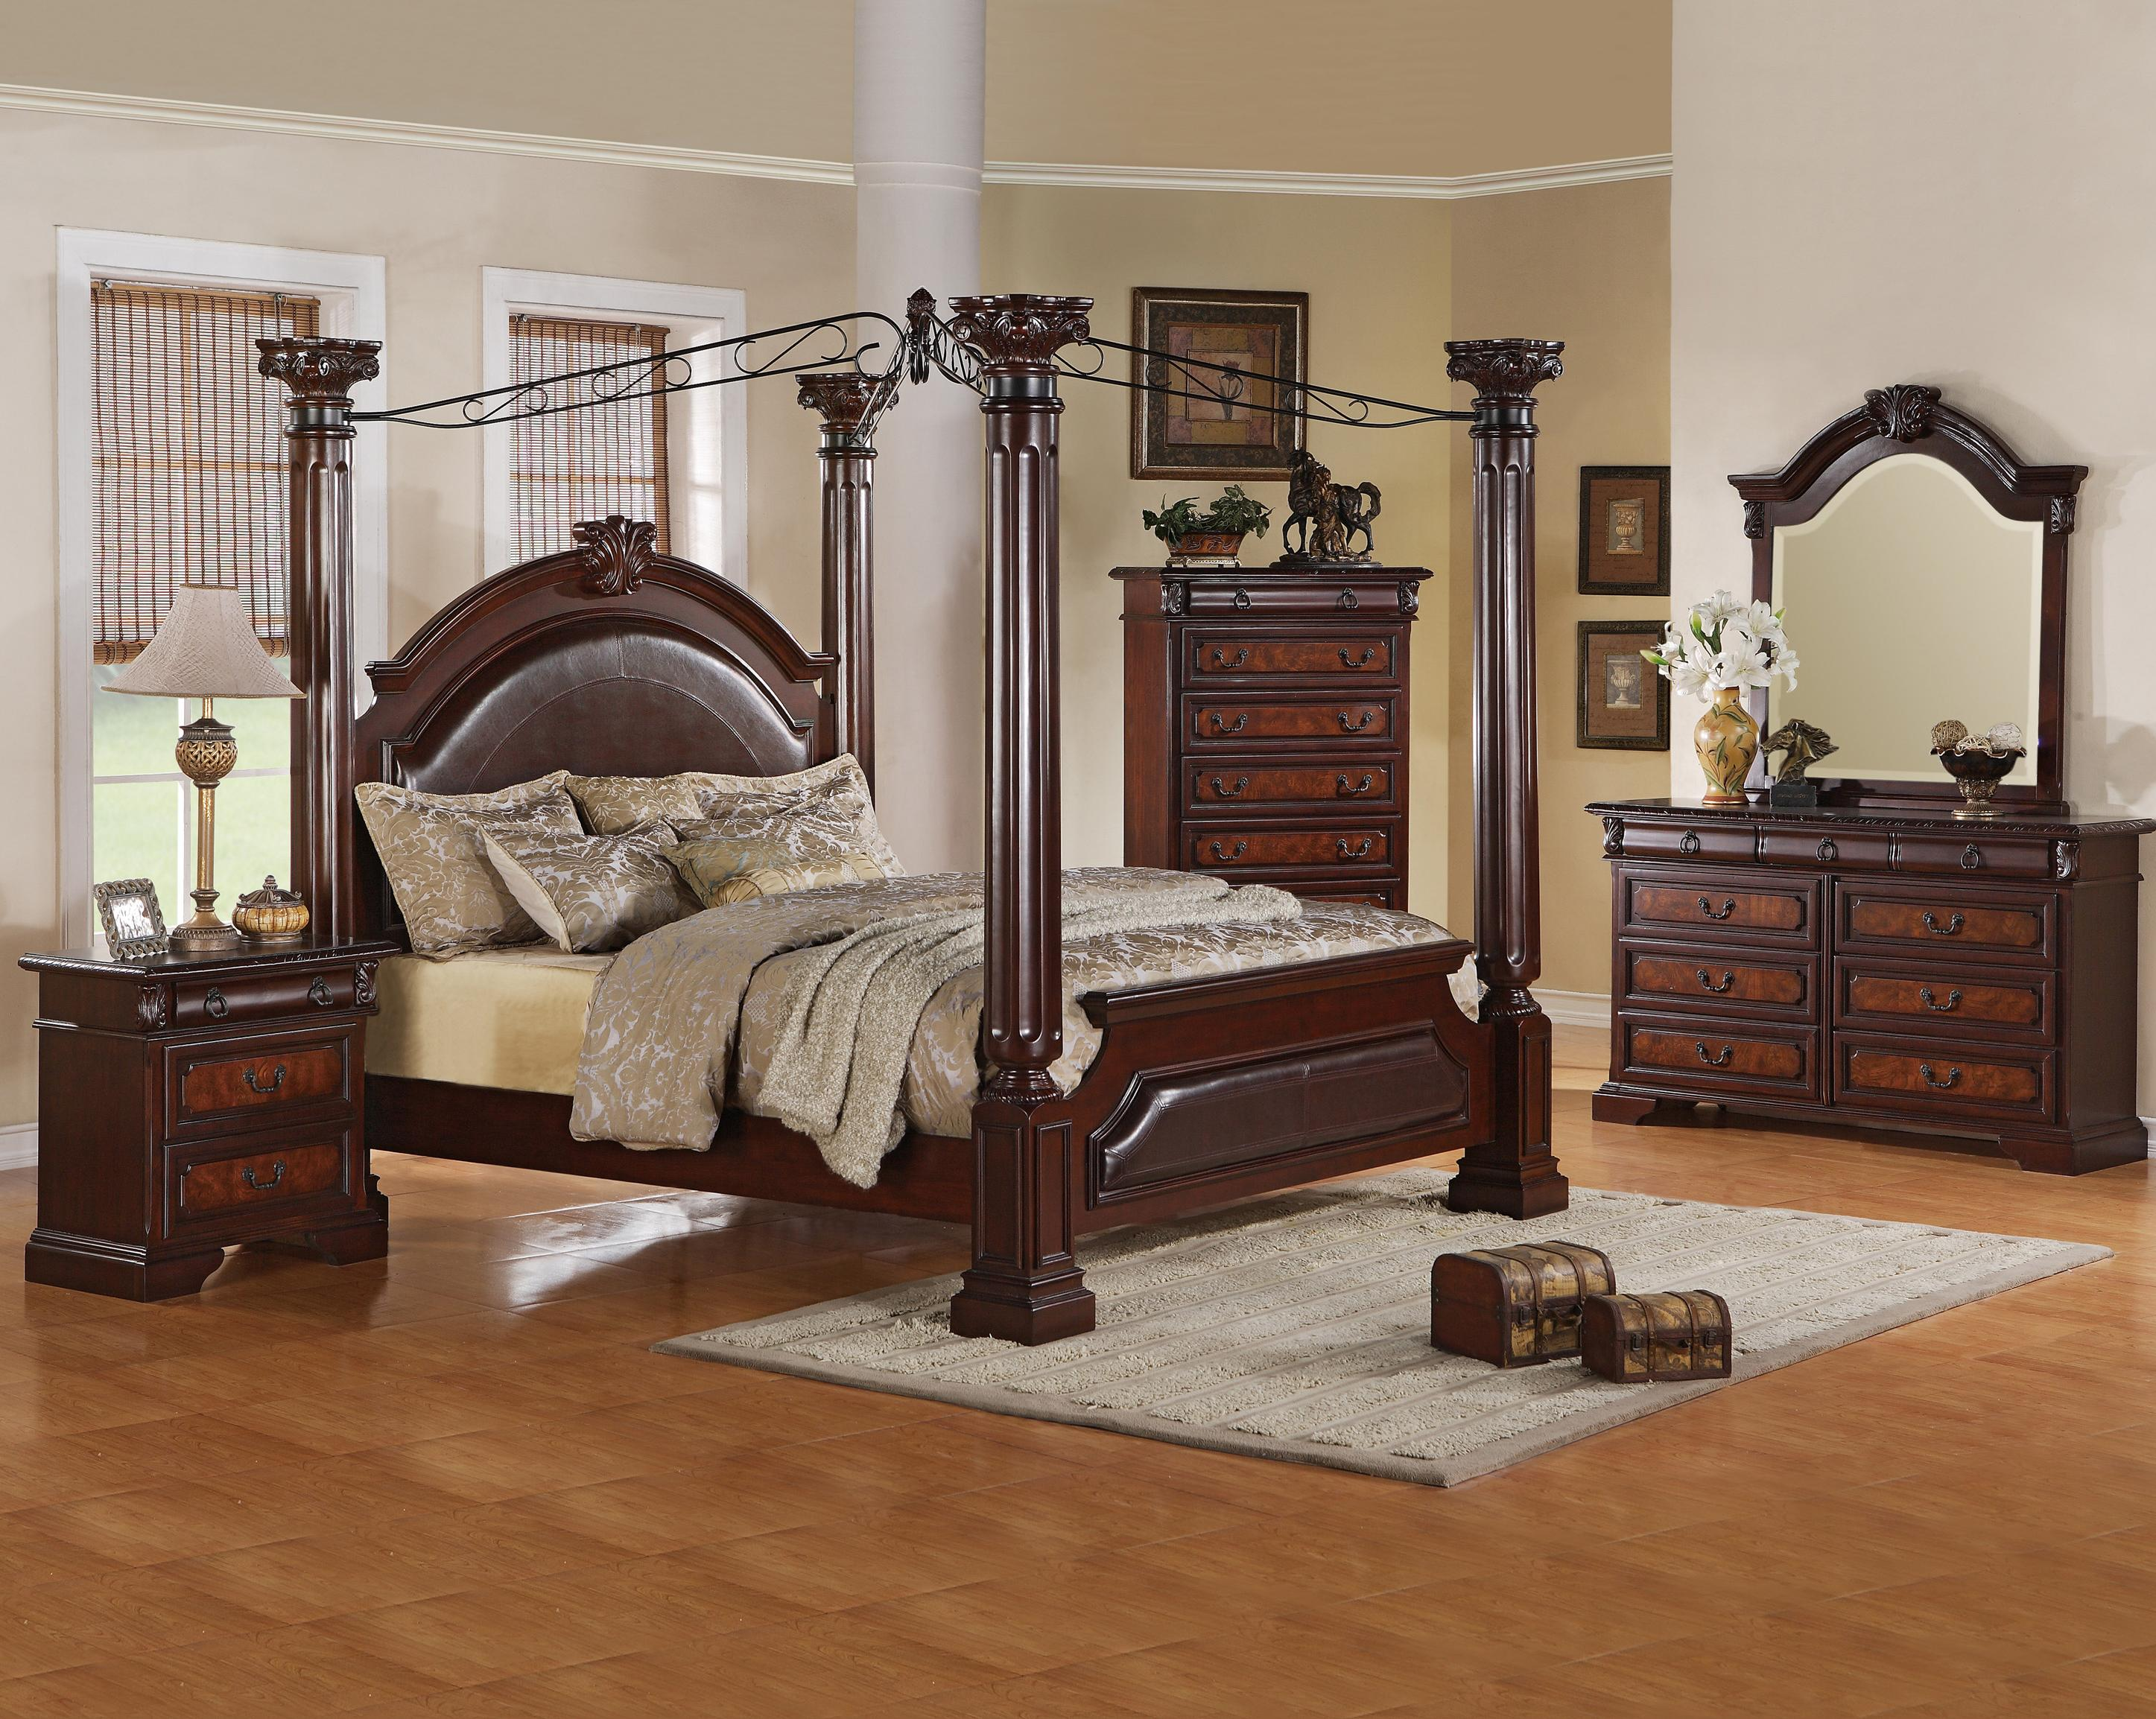 Crown Mark Neo Renaissance Cal King Bedroom Group - Item Number: B1470 Cal King Bedroom Group 1